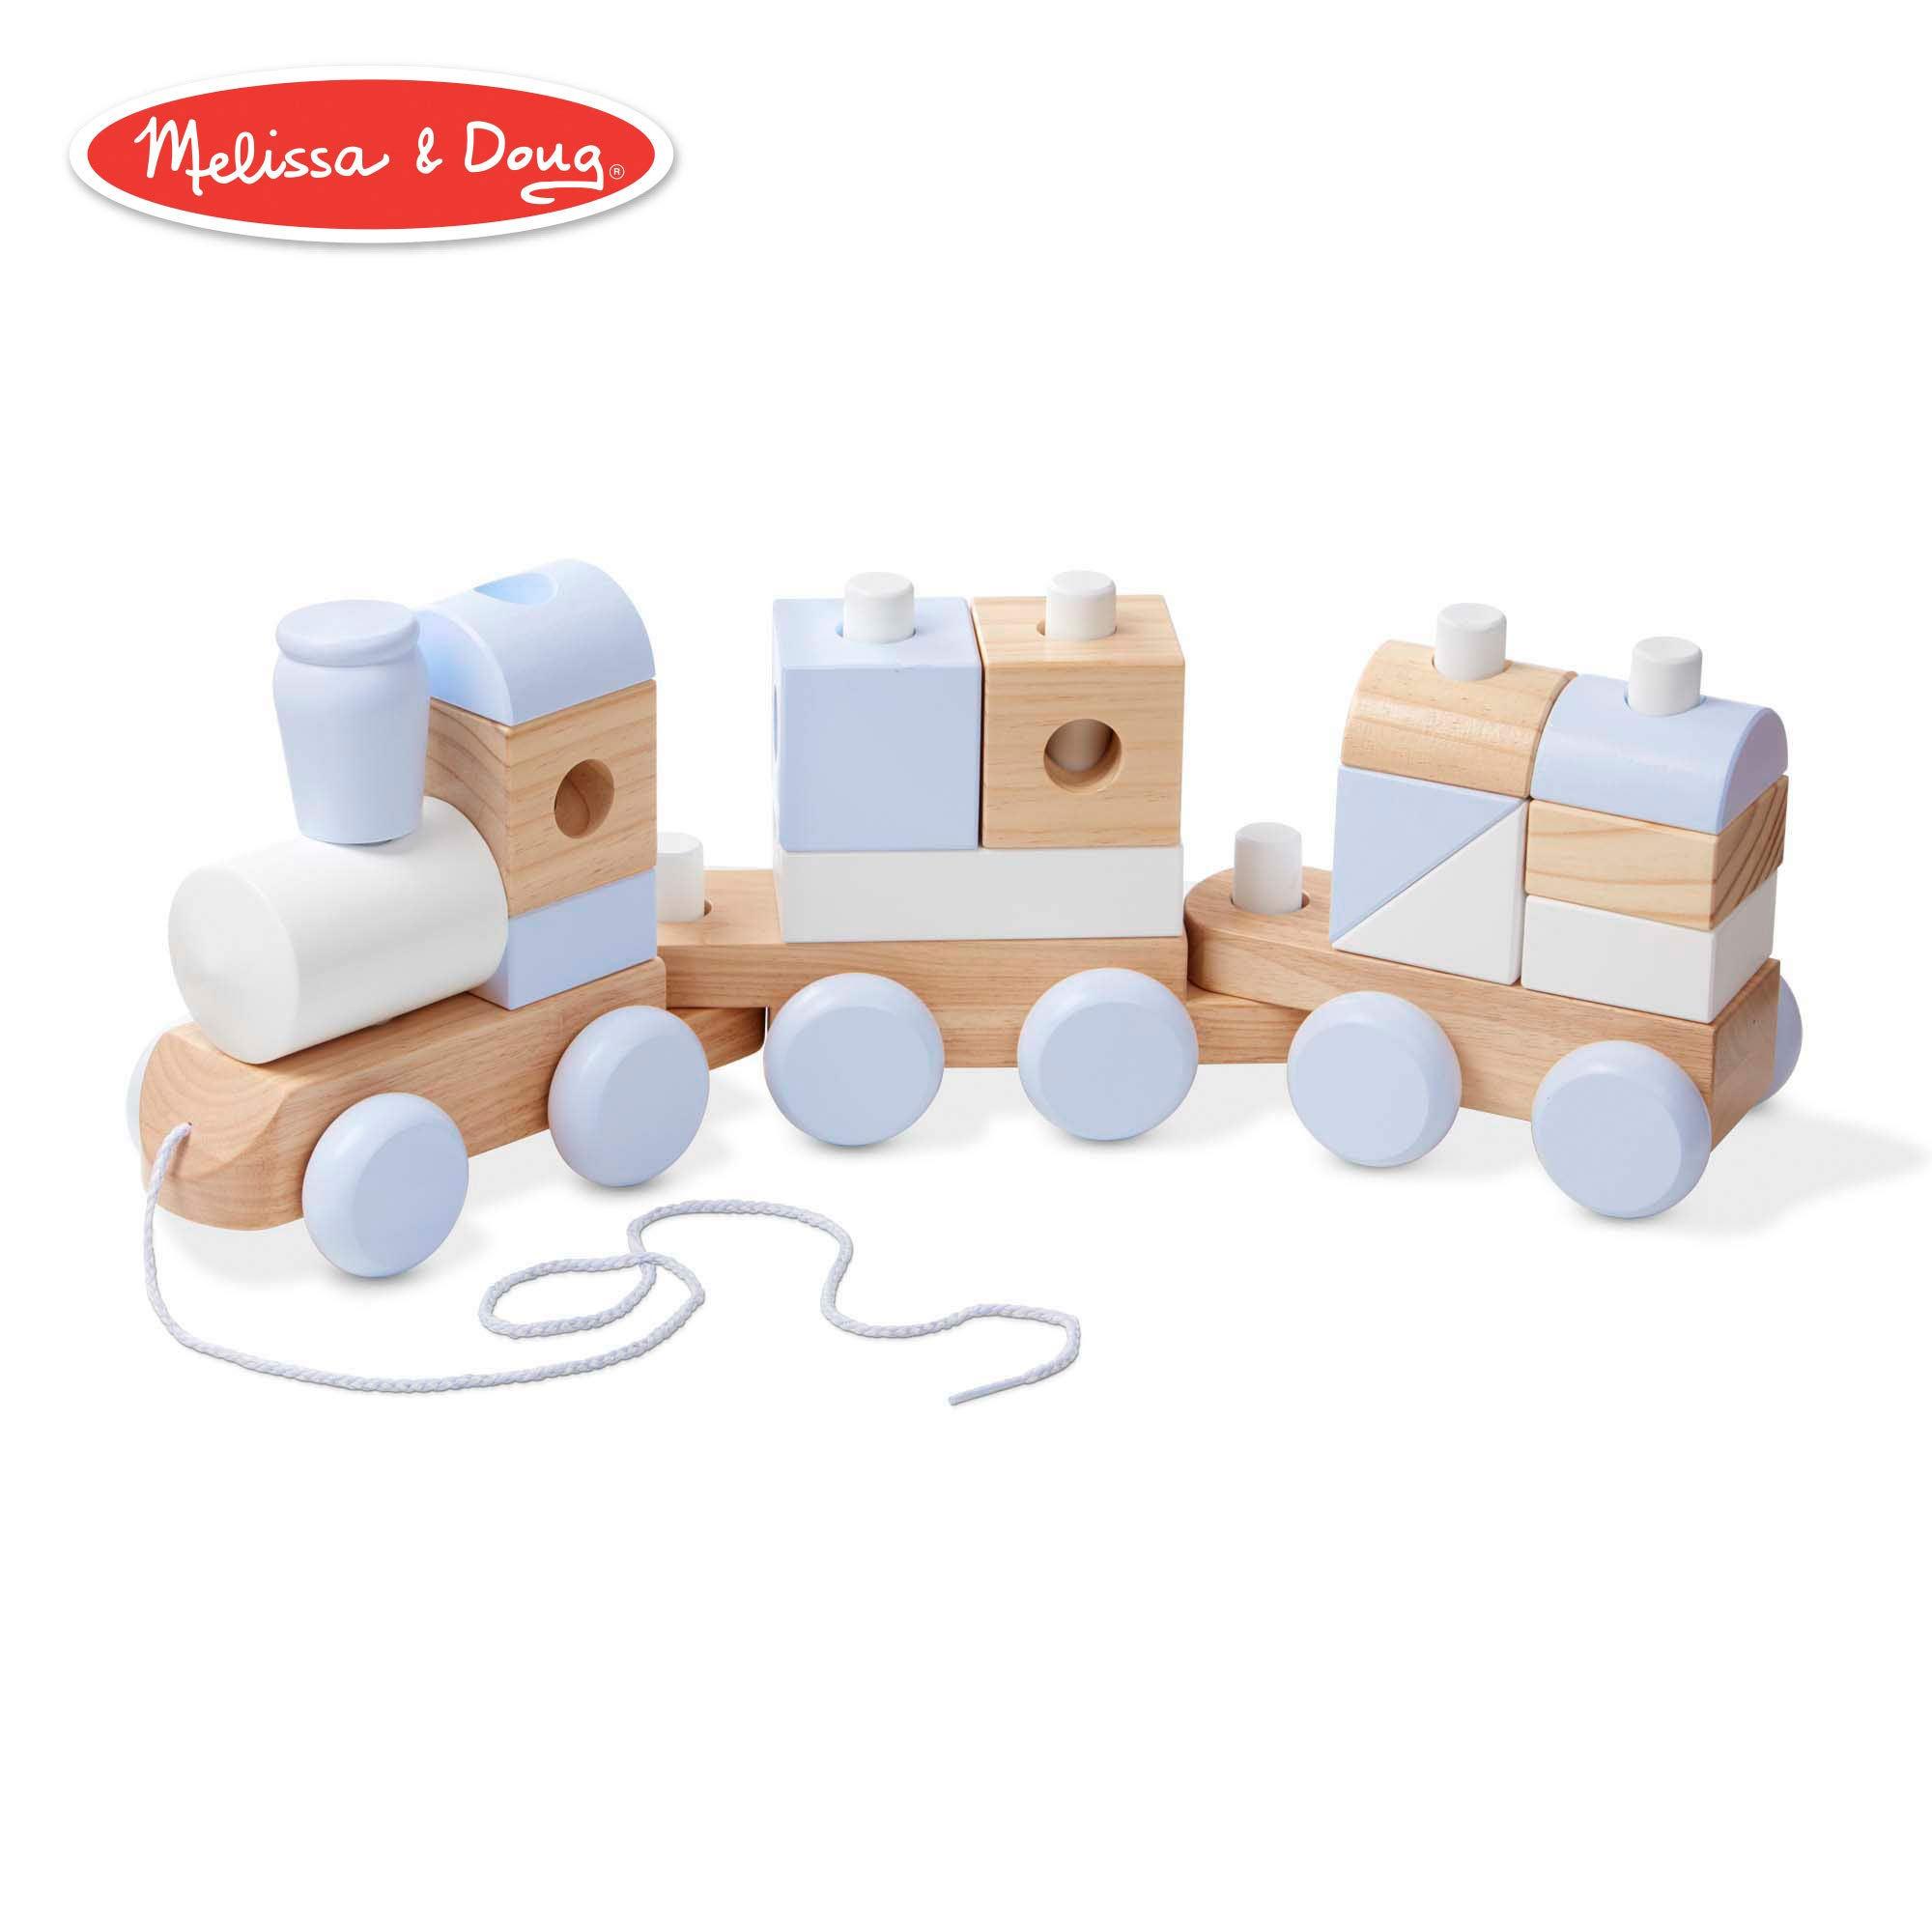 Melissa & Doug Wooden Jumbo Stacking Train (3-Color Toddler Toy, Decorative Piece, 17 Pieces)